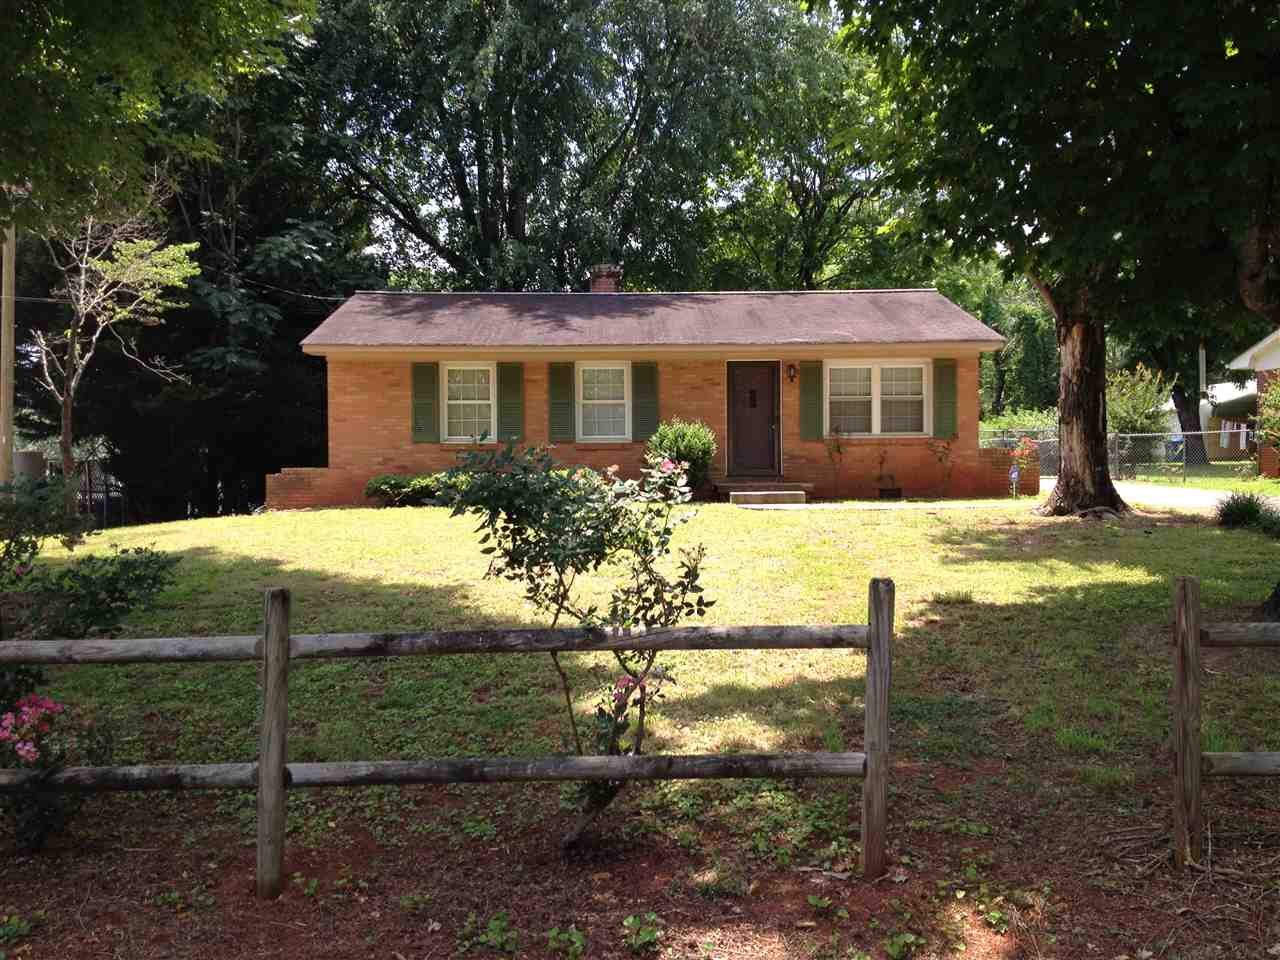 127 Northview Dorsey, Rutherfordton, NC 28139